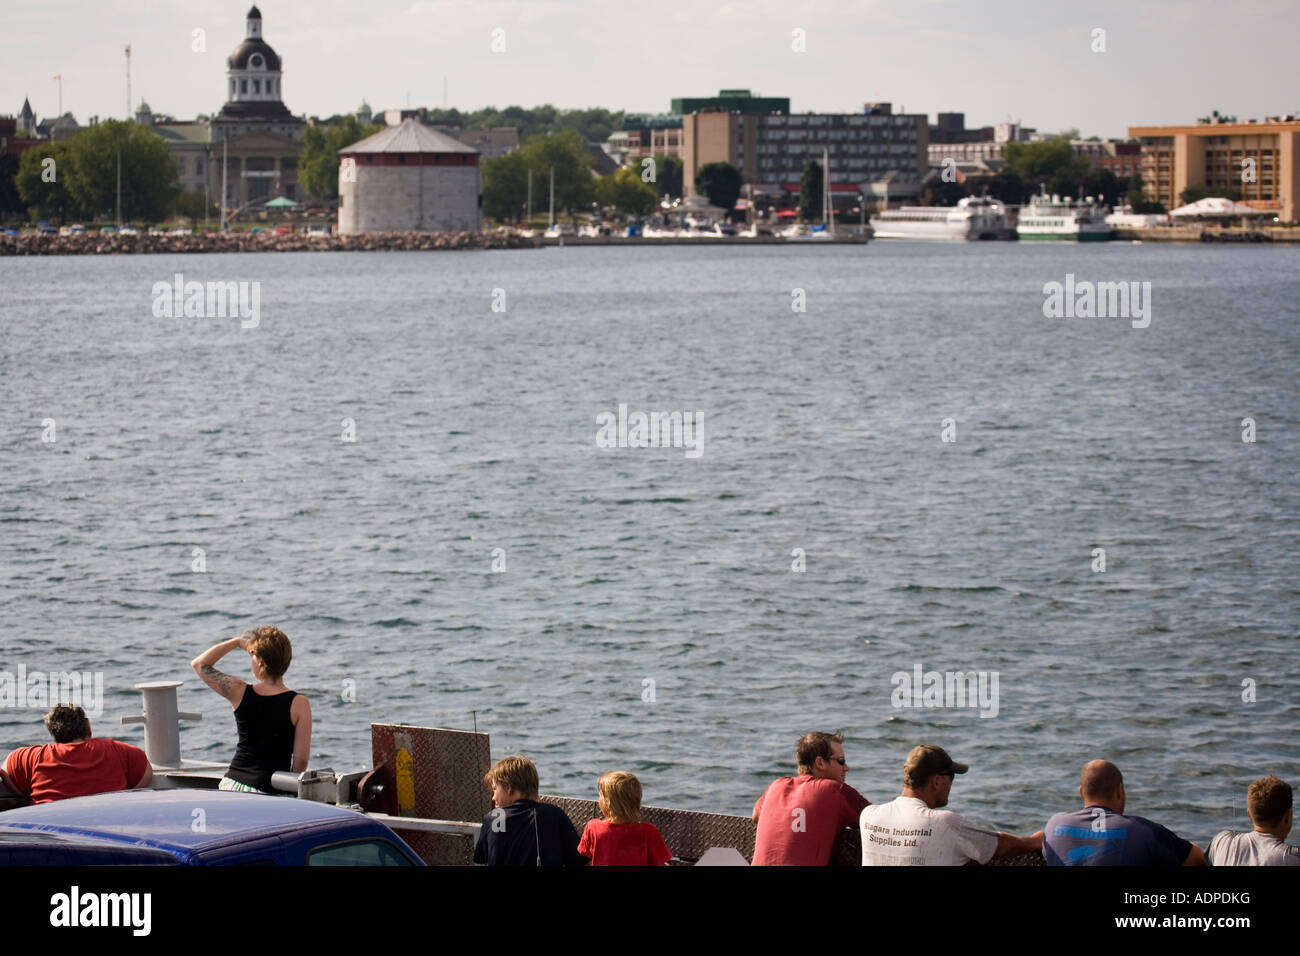 http://c8.alamy.com/comp/ADPDKG/passengers-aboard-wolfe-island-ferry-to-kingston-ontario-canada-2007-ADPDKG.jpg